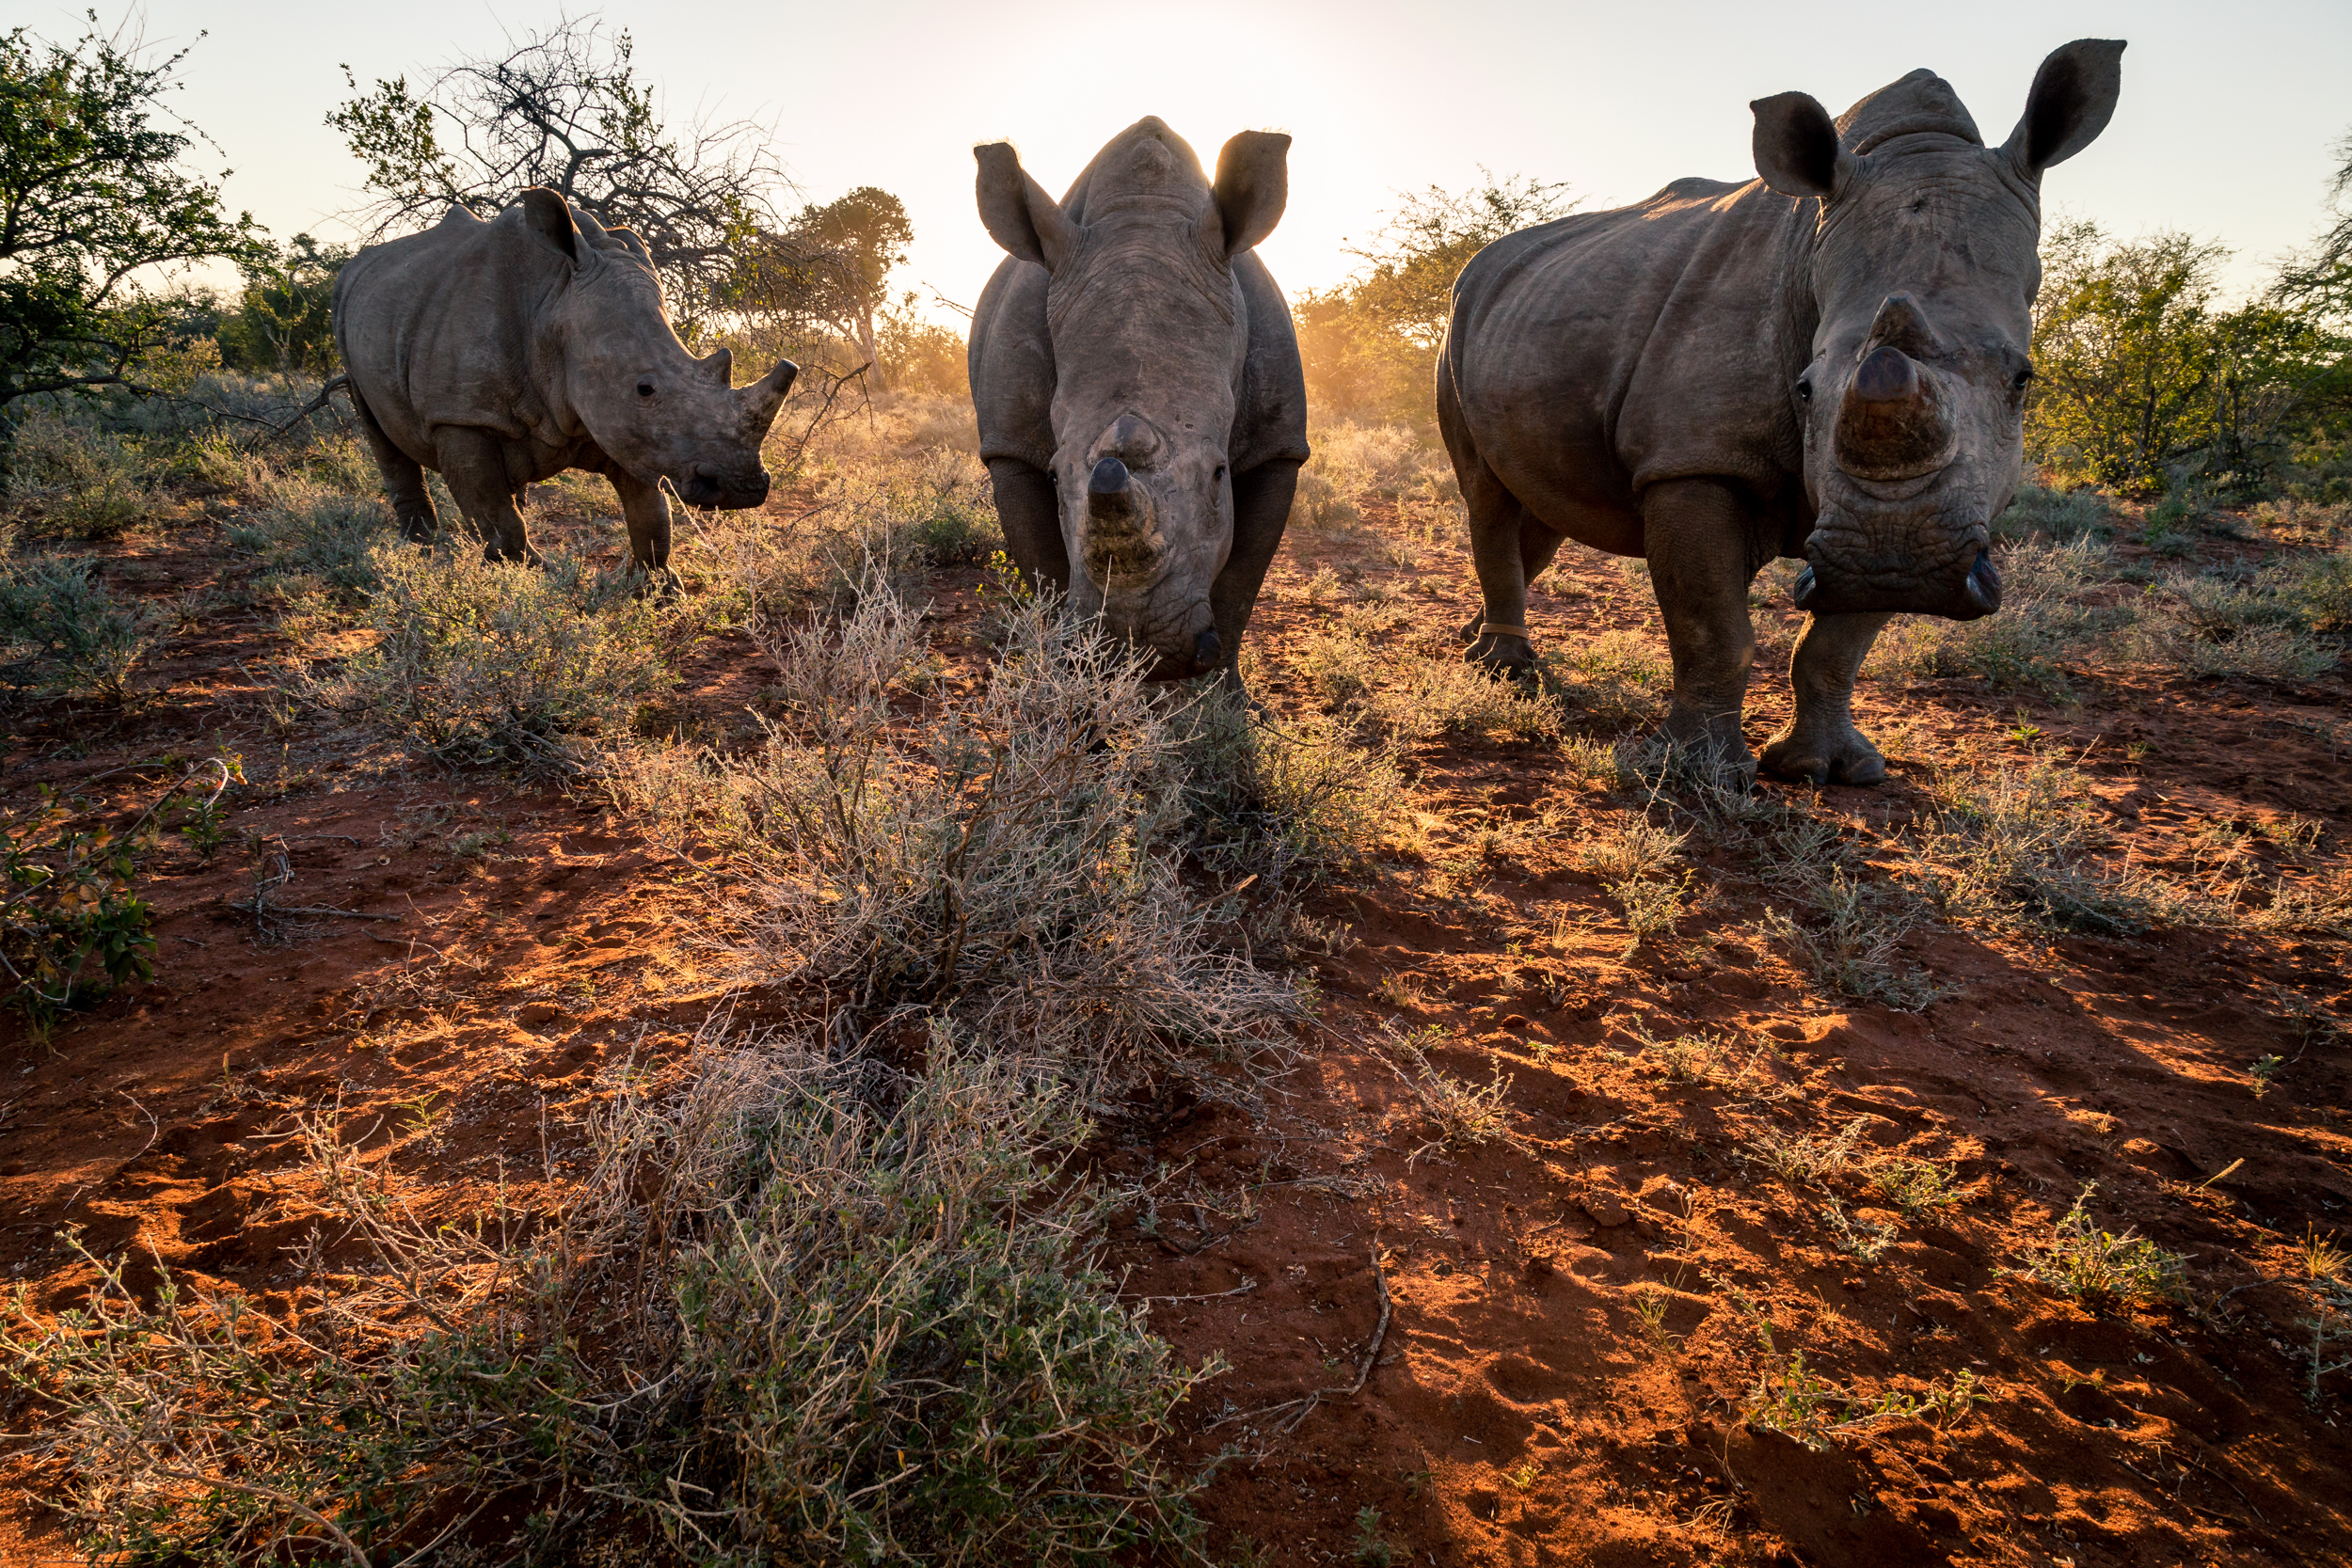 Three White Rhinos by Mike O Leary - Greengraf Photography.jpg